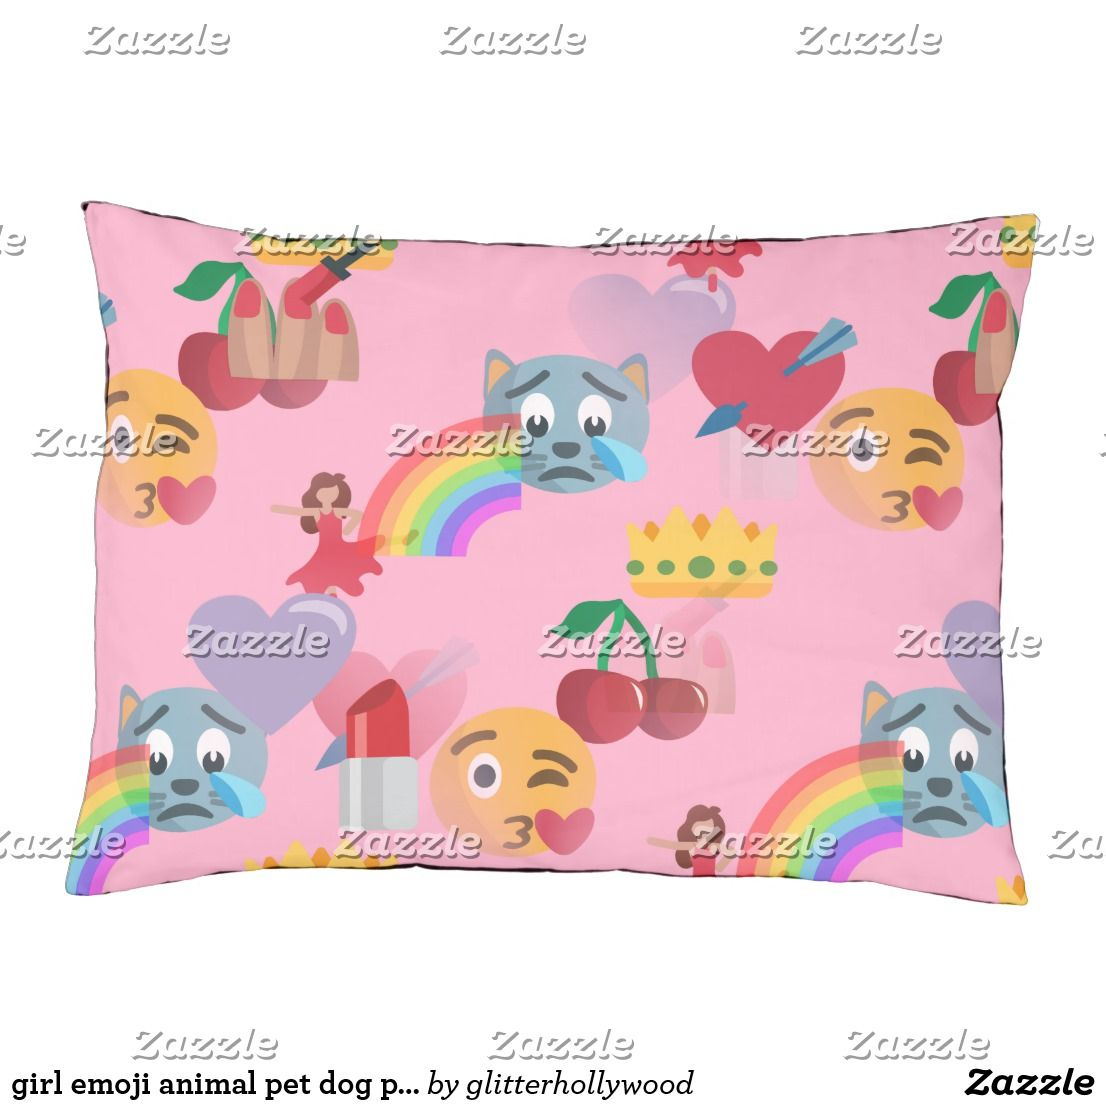 girl emoji animal pet dog puppy bed Pets